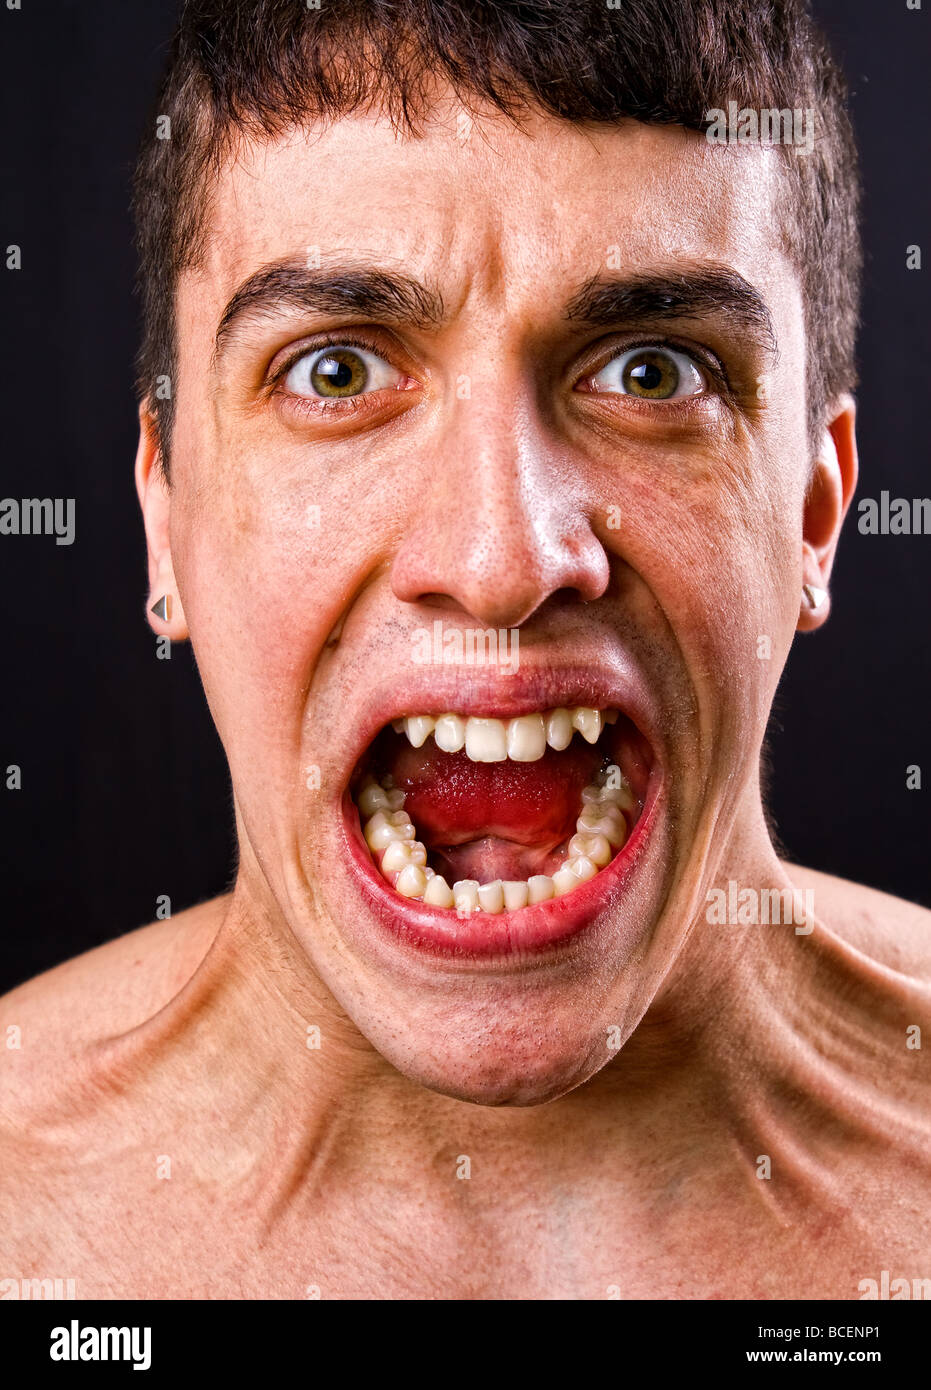 Scream of shocked and scared young man - Stock Image